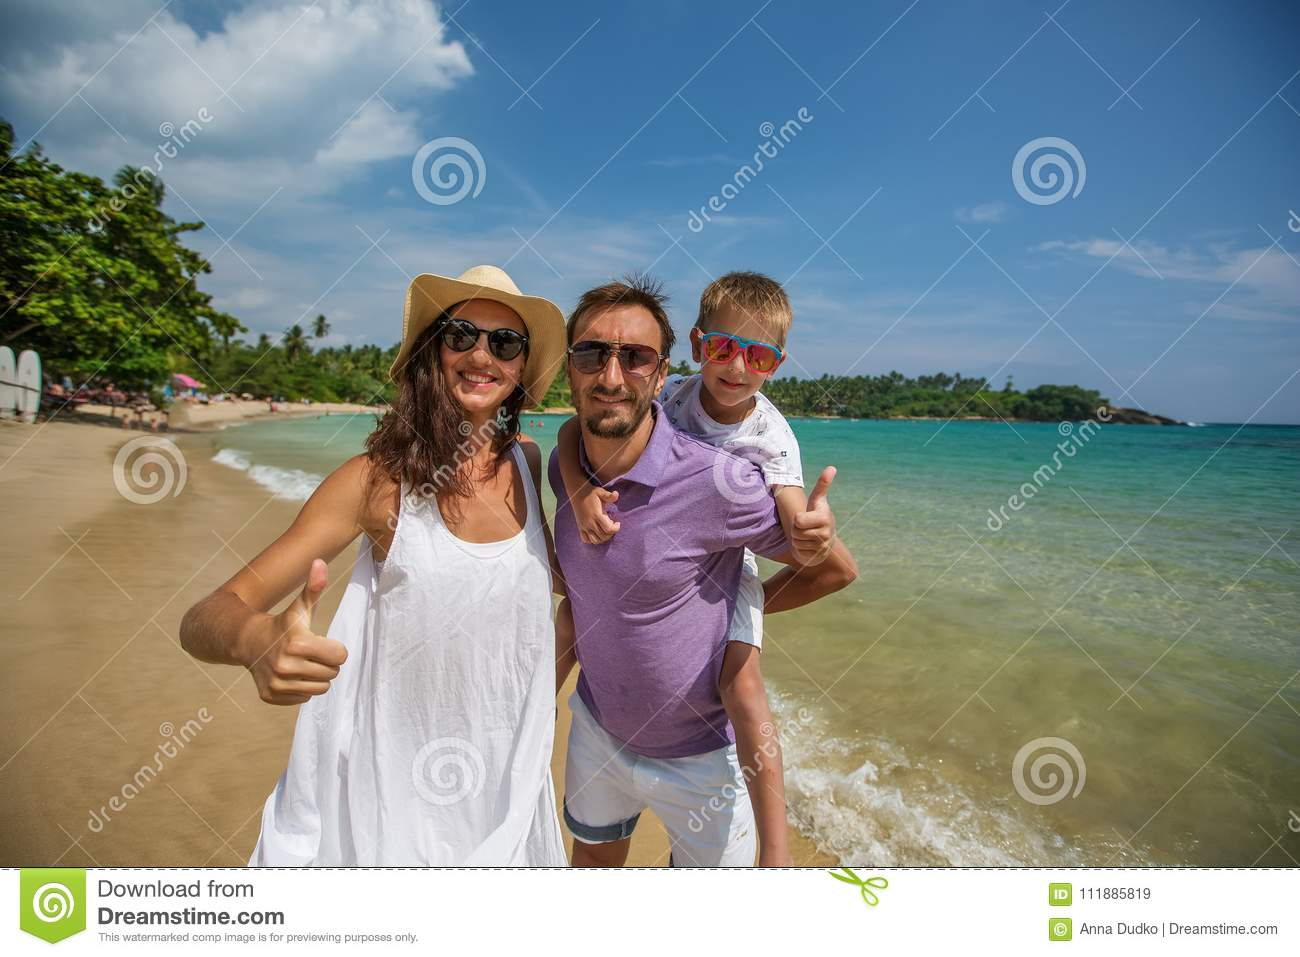 Adult vacation india